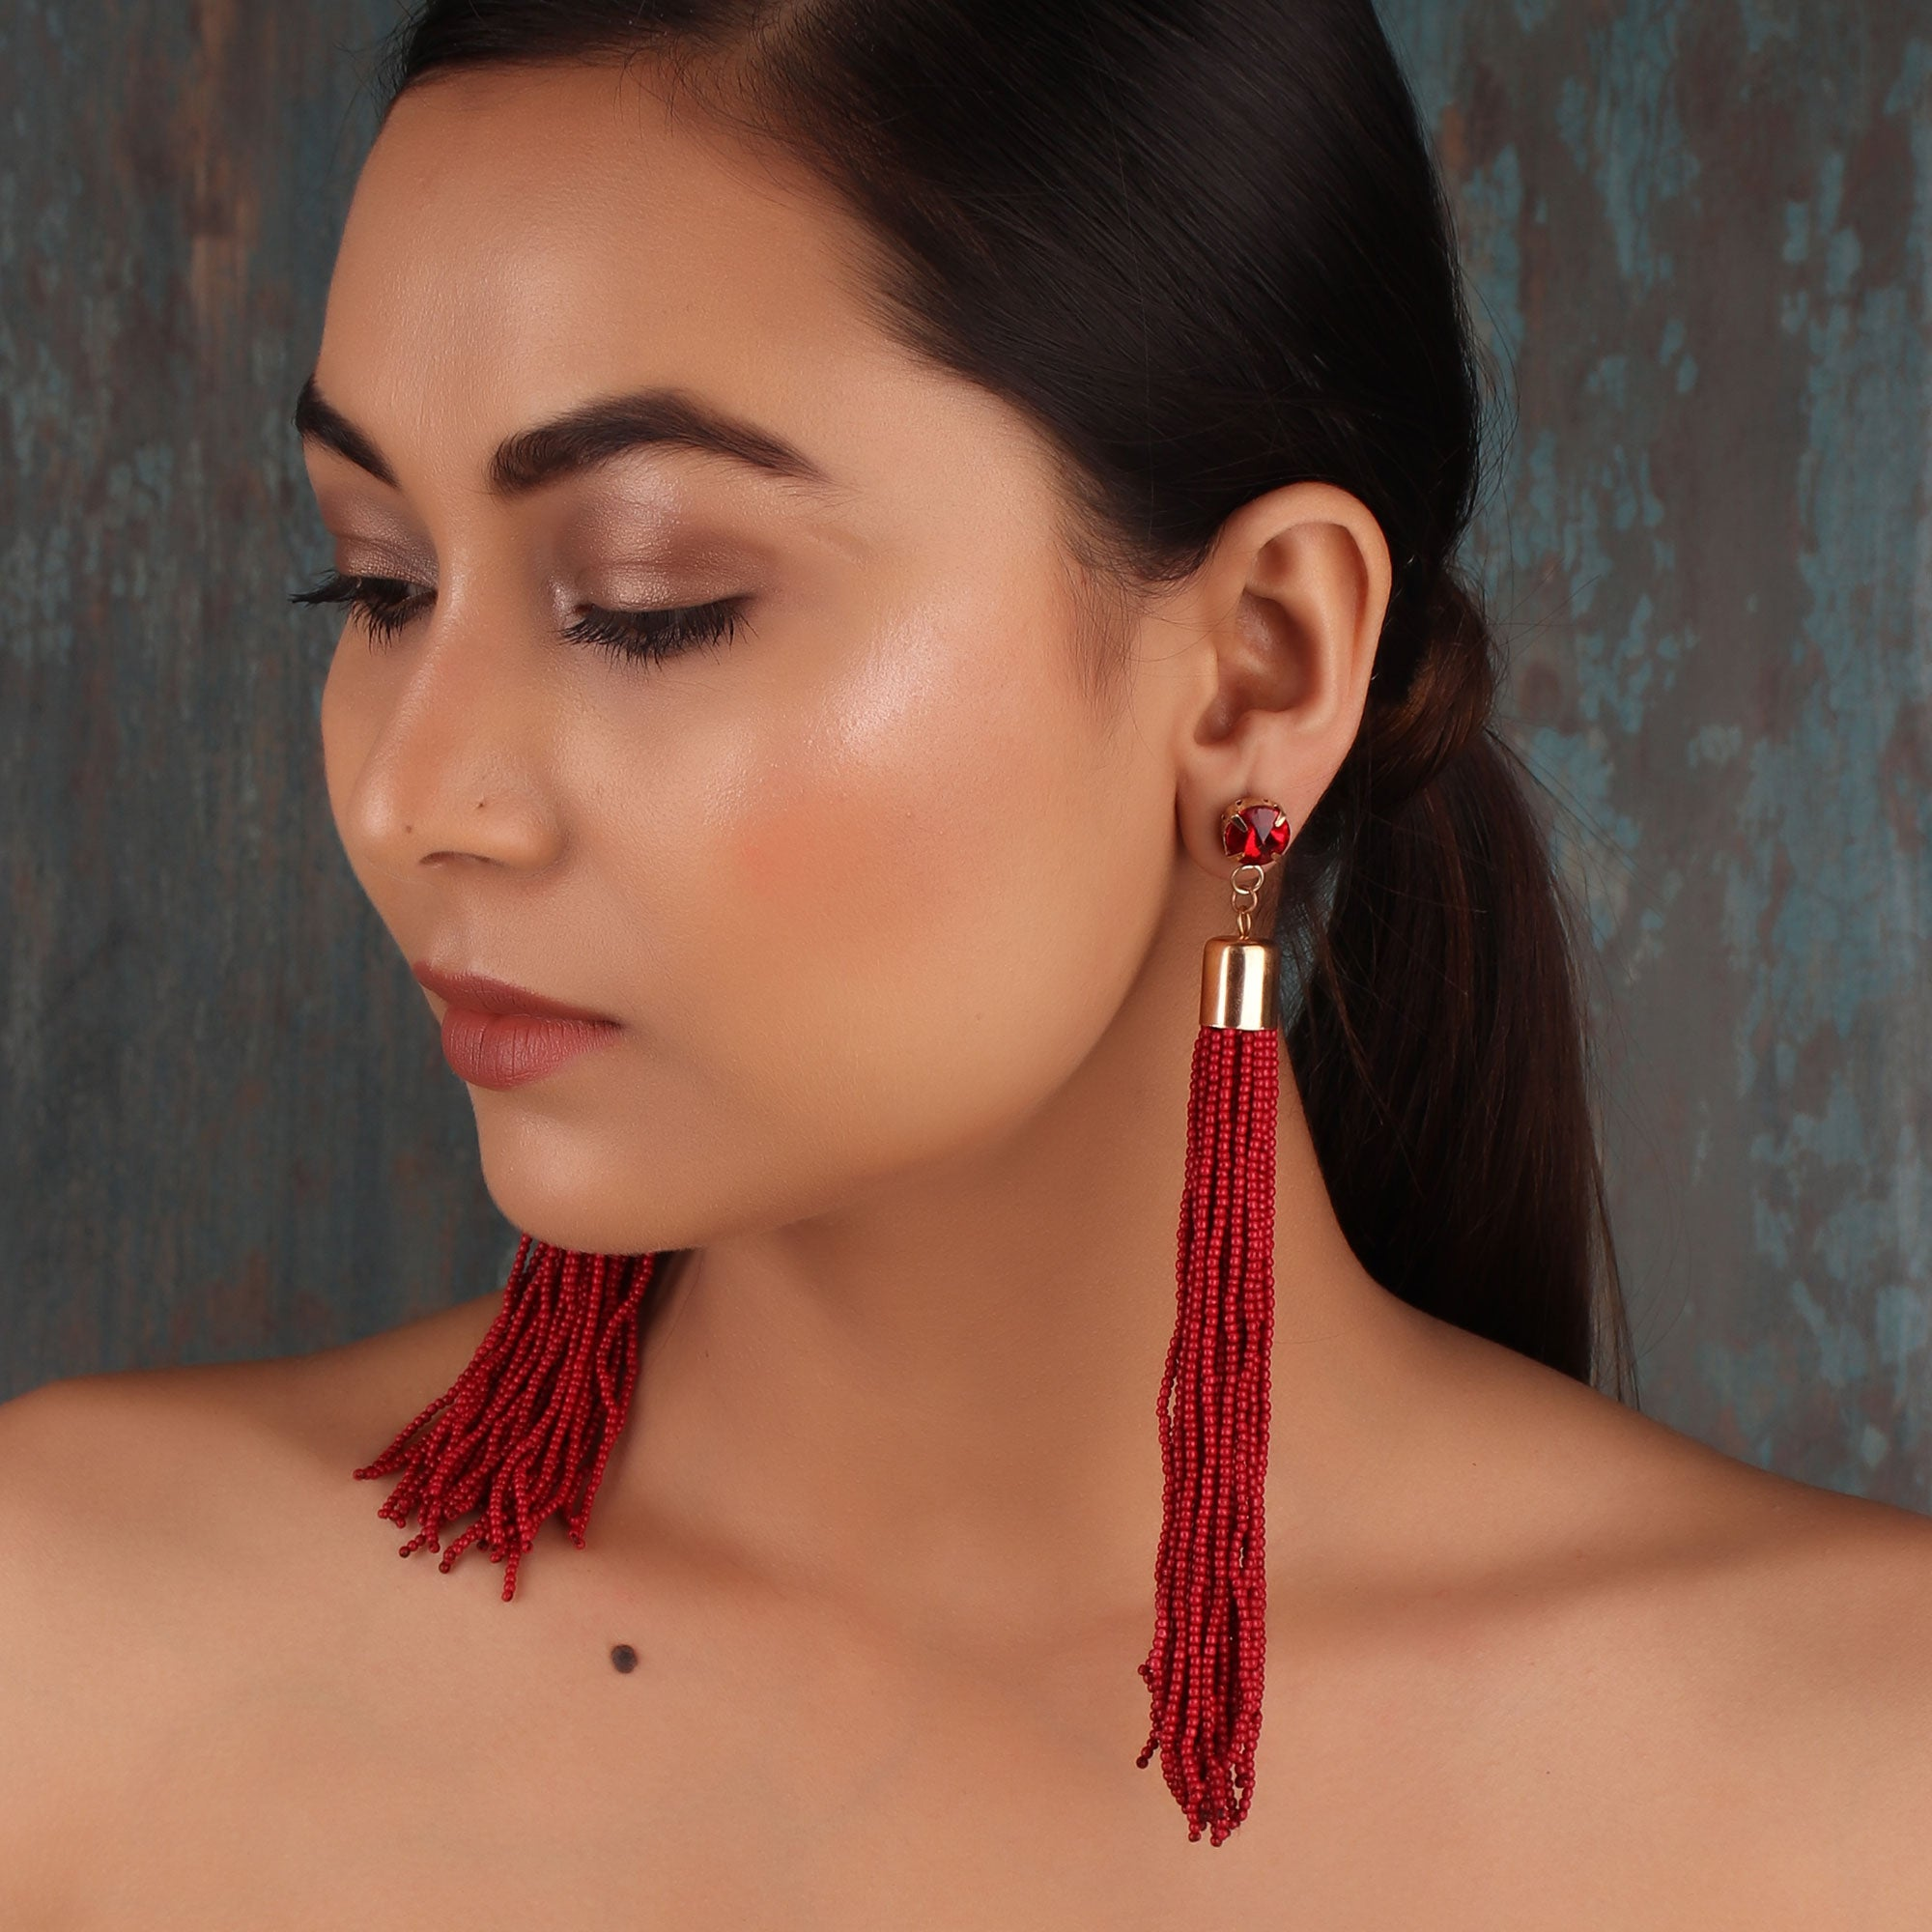 Earrings,The Straight Vine Beaded Tassel Earrings in Maroon - Cippele Multi Store